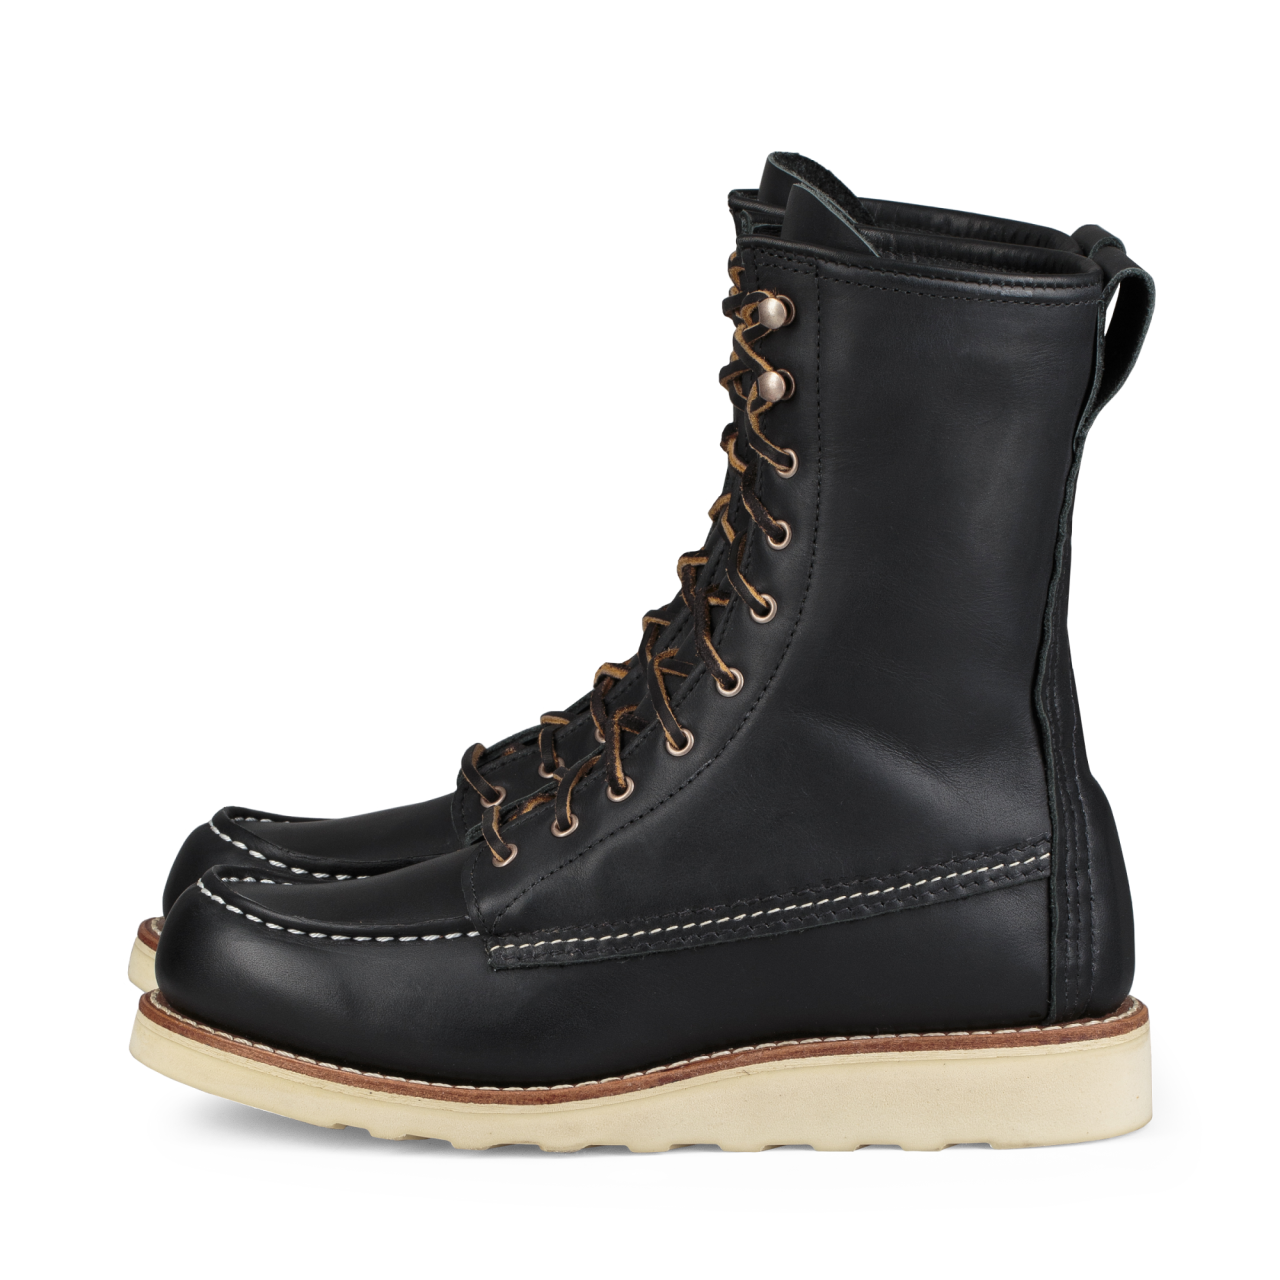 Red Wing 3424 Moc Toe